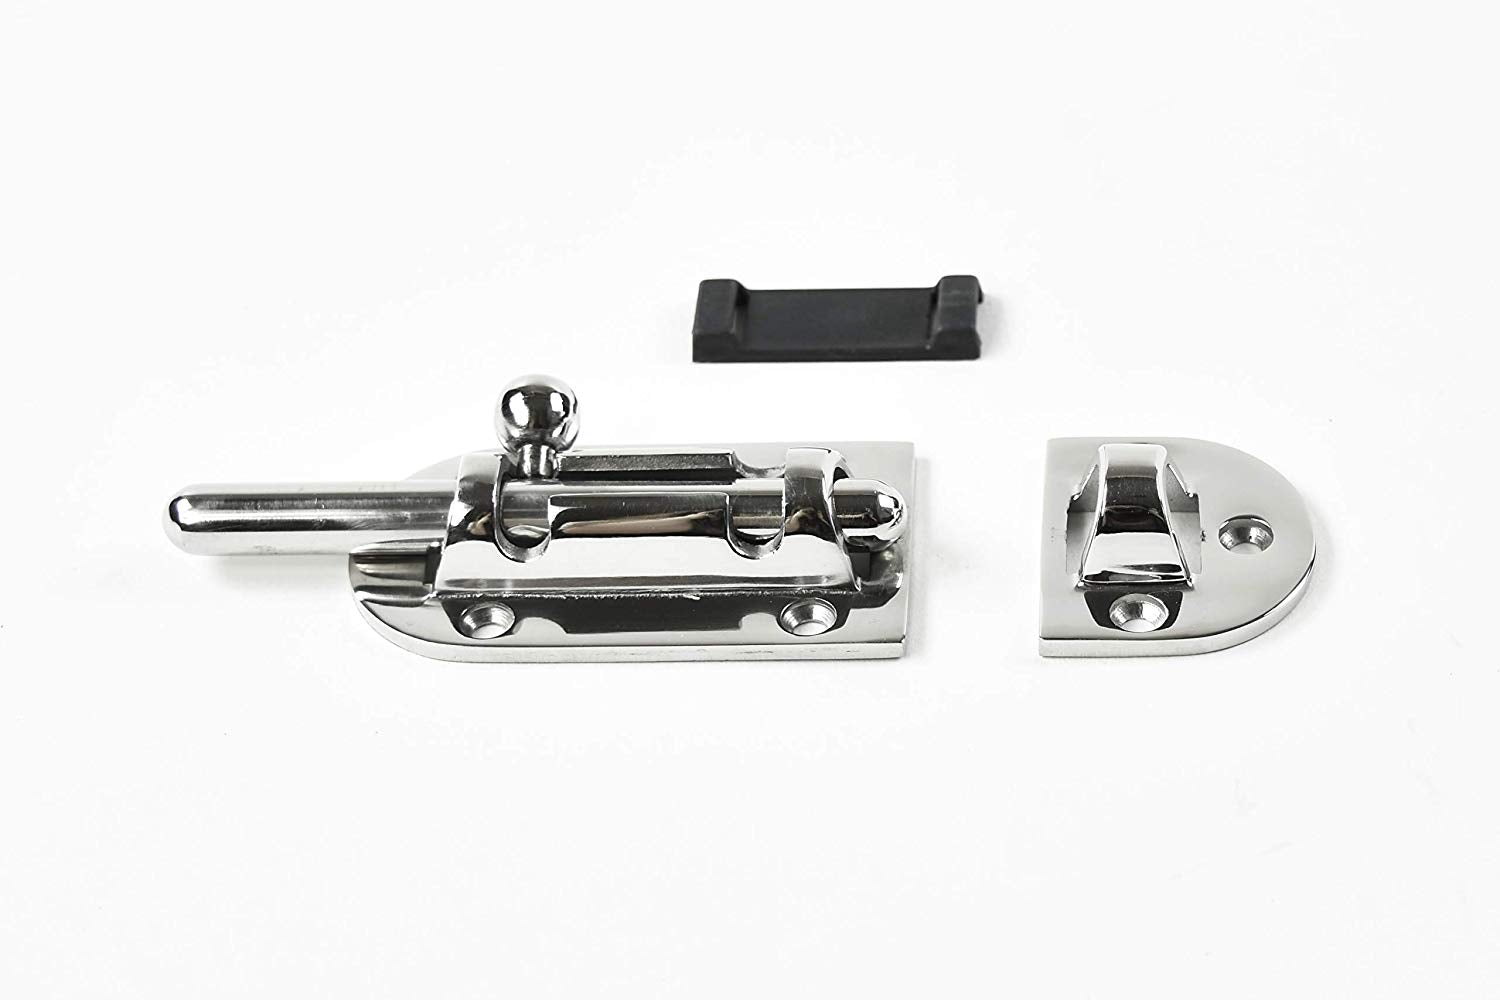 "Marine City Boat Stainless Steel 316 Heavy-Duty Barrel Bolt Door Latches/Lock 6 Point Fixing (Size: 4-1/4"" × 1-1/2"")"